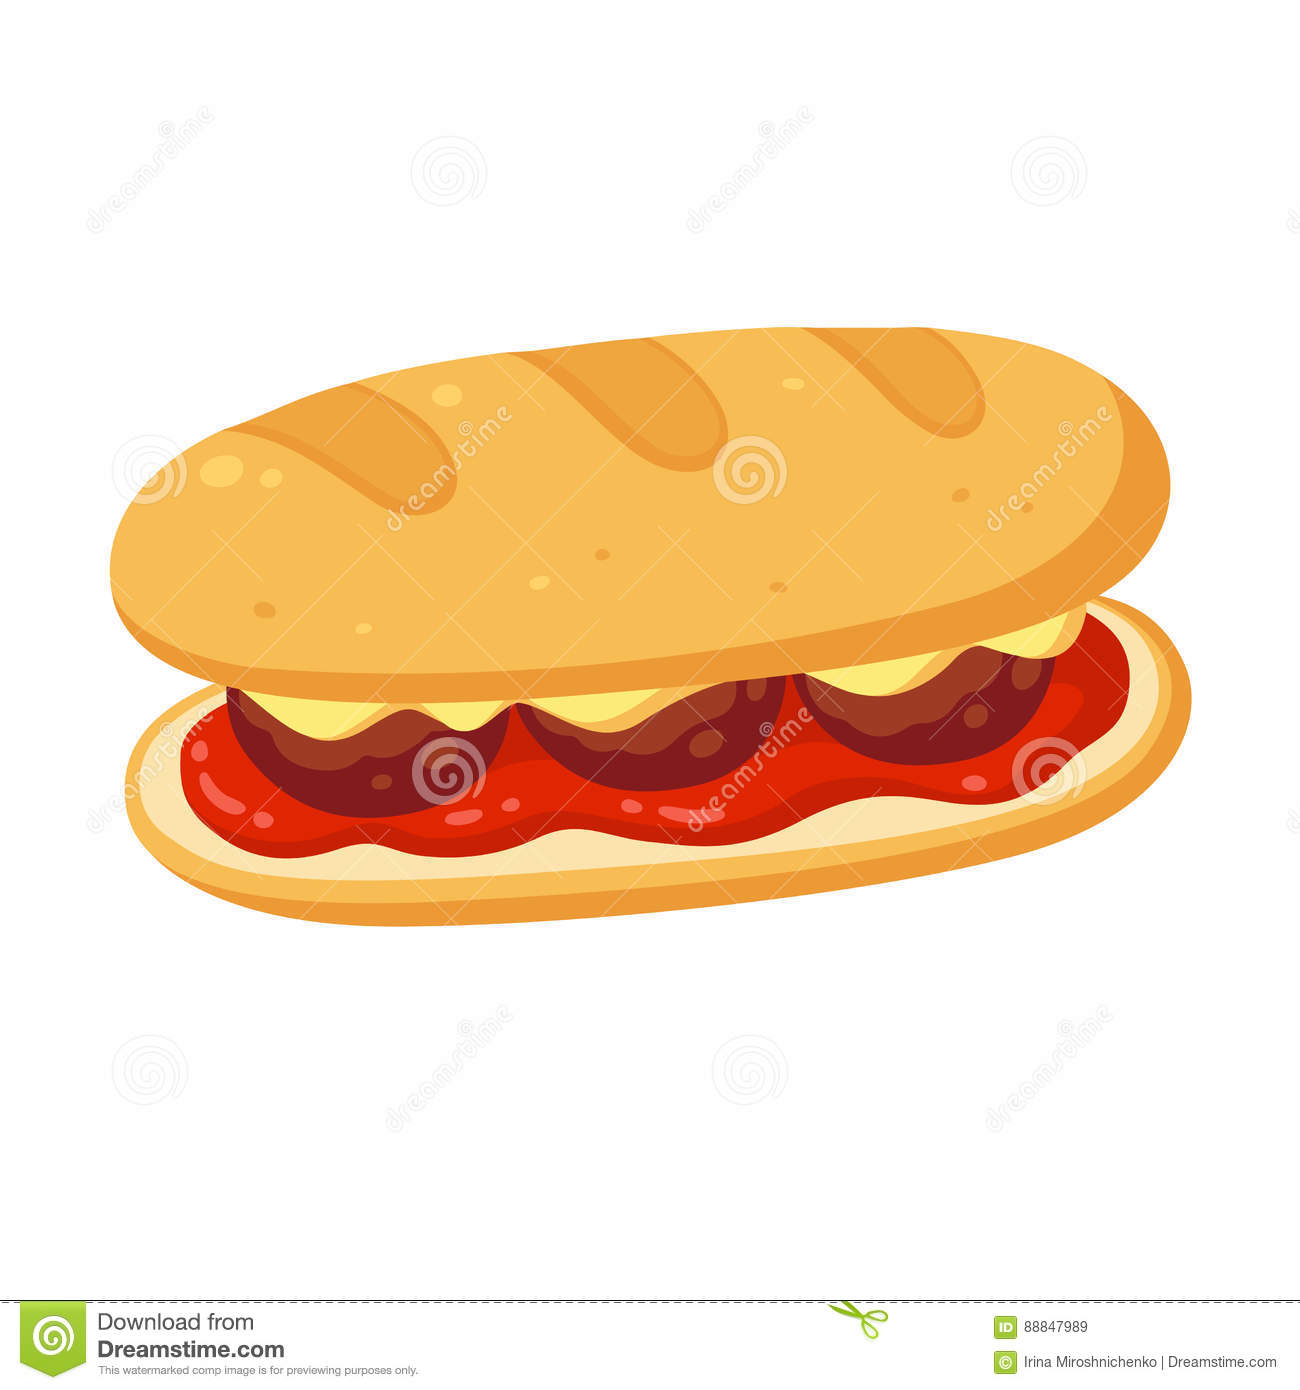 Submarine Sandwich Stock Illustrations – 49 Submarine Sandwich ...